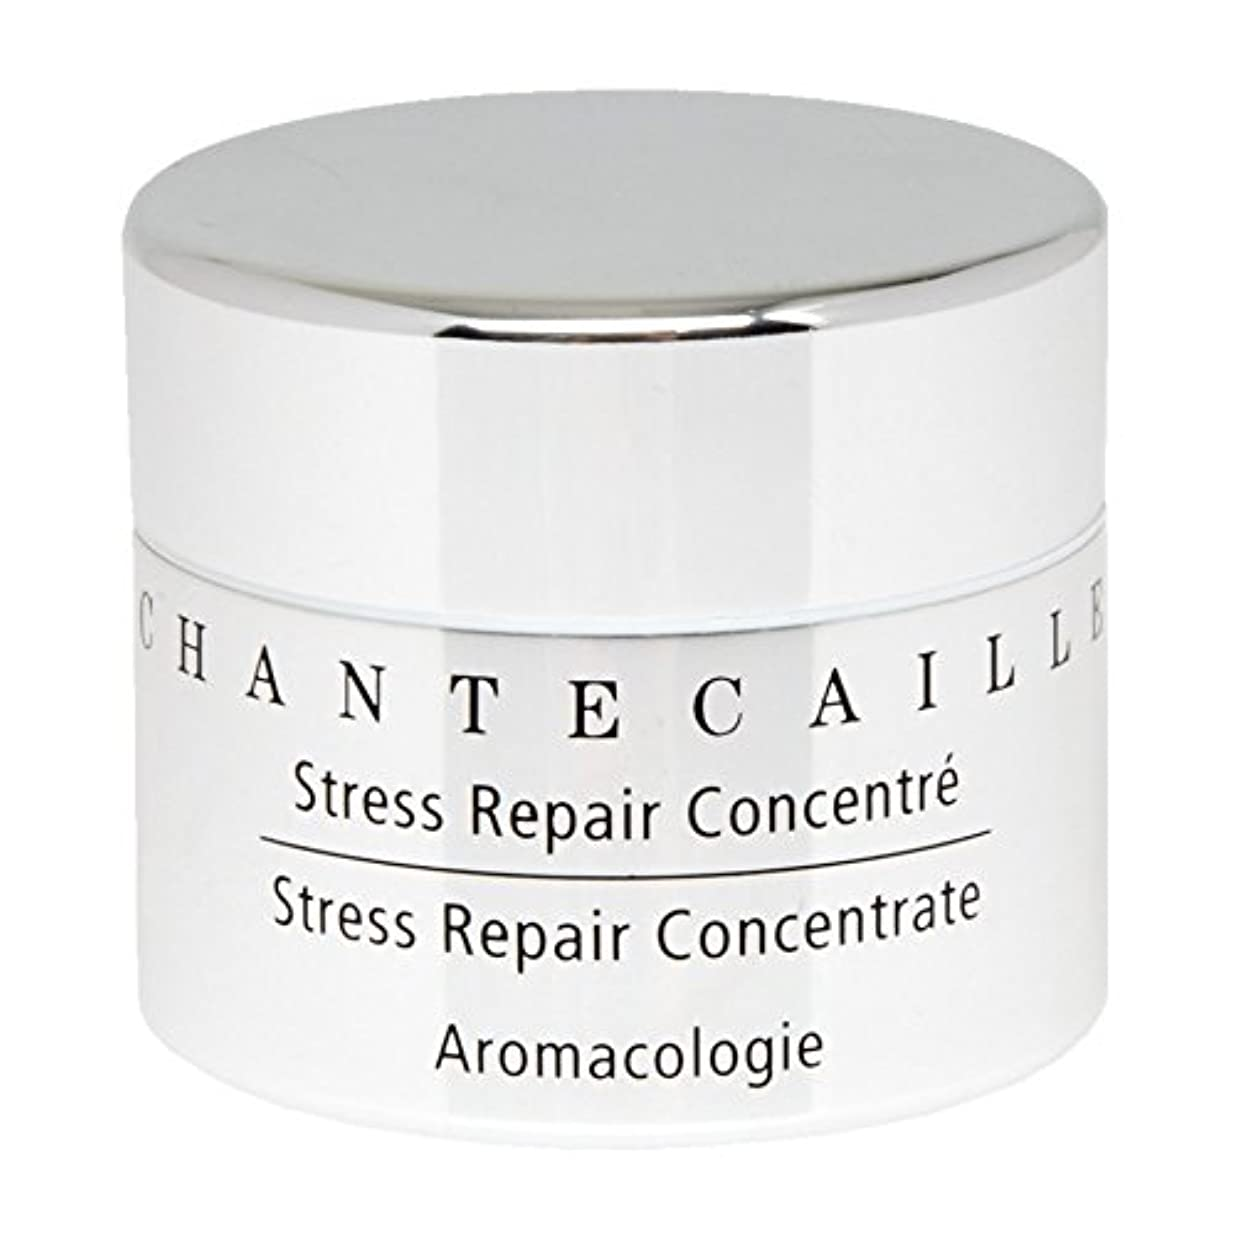 Chantecaille Stress Repair Concentrate 15ml (Pack of 6) - シャンテカイユストレス修復濃縮15ミリリットル x6 [並行輸入品]